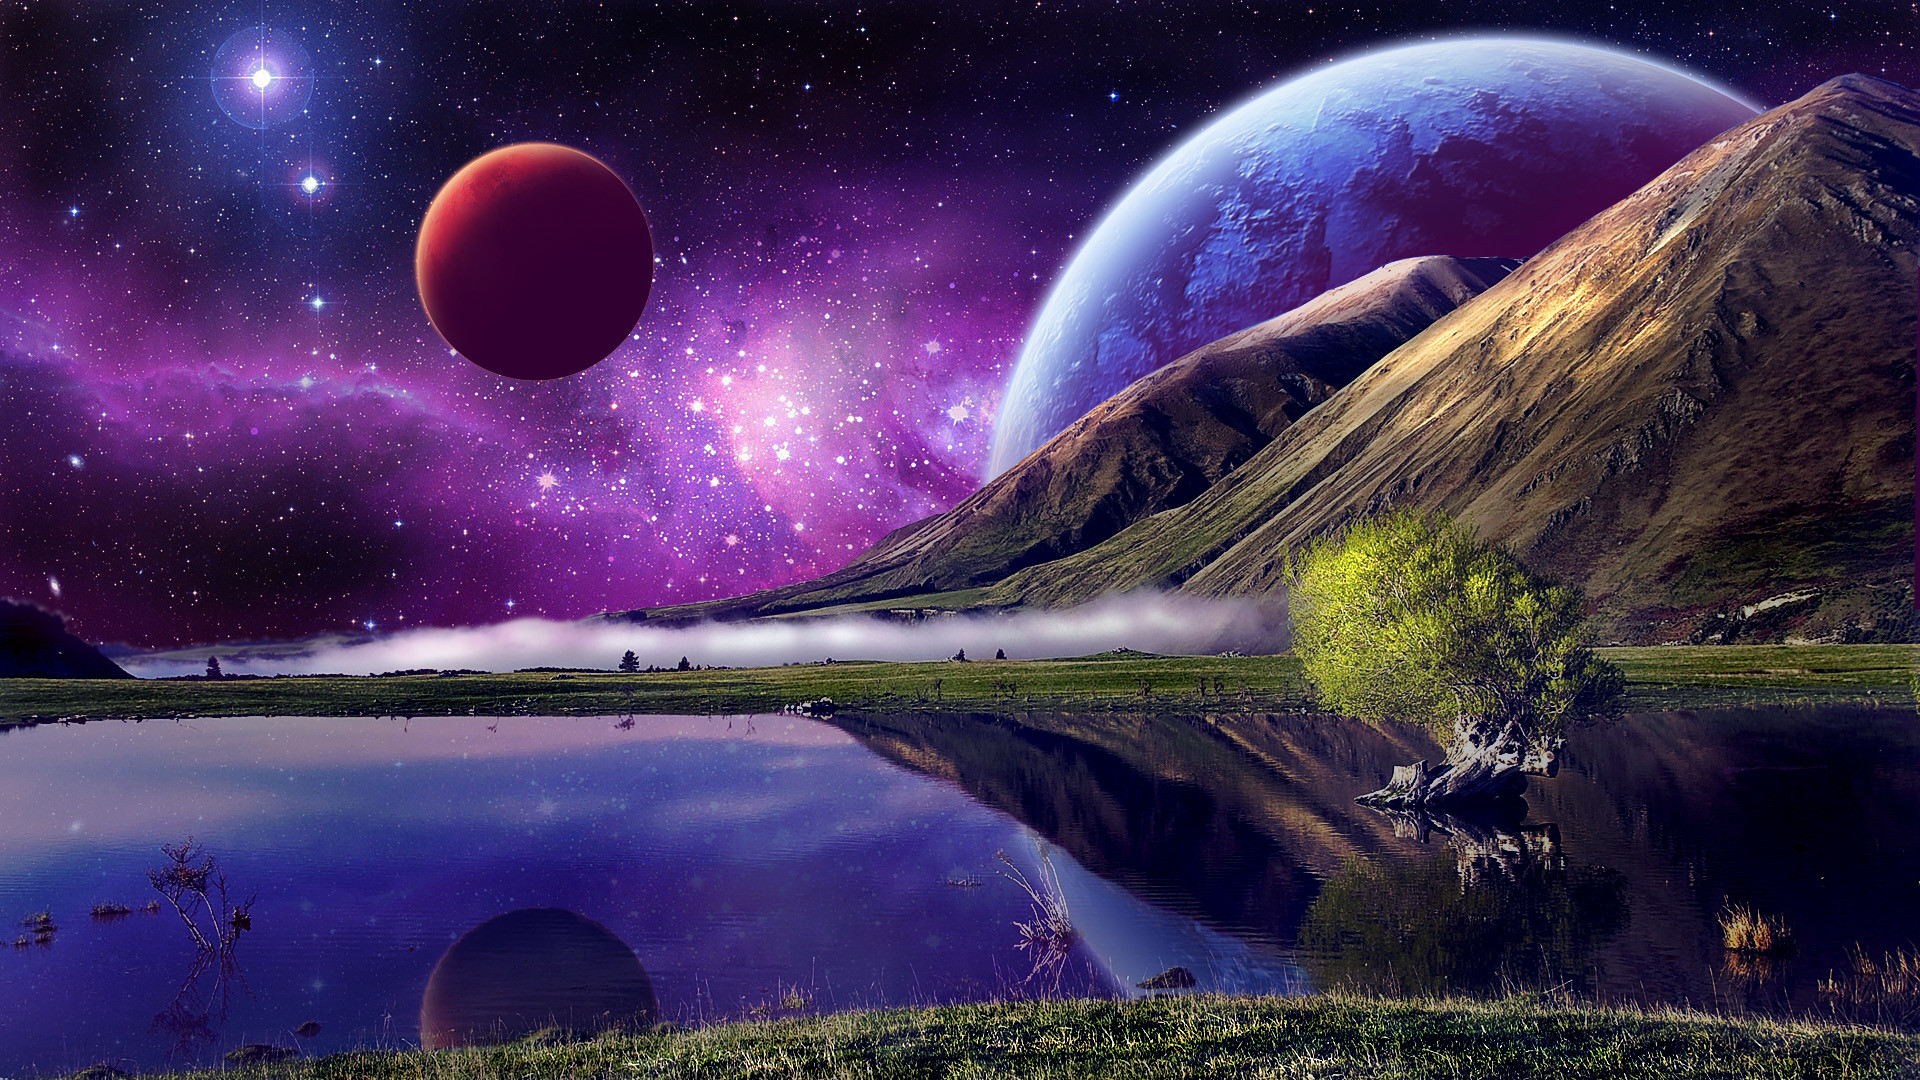 Epic Space Wallpapers hd 1080p Epic Space Background hd